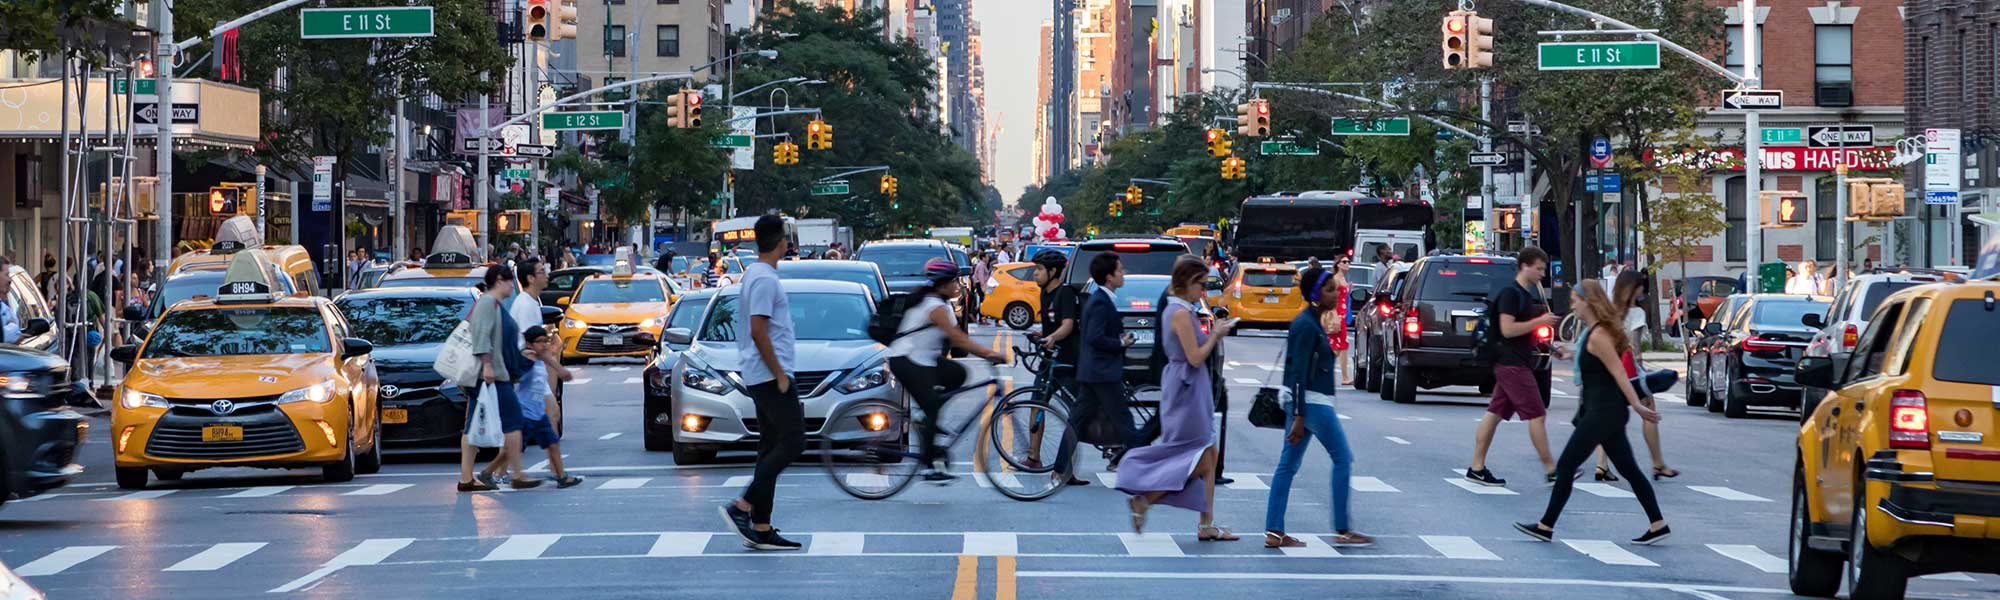 How The Younger Generation Will Save NYC's Business Districts